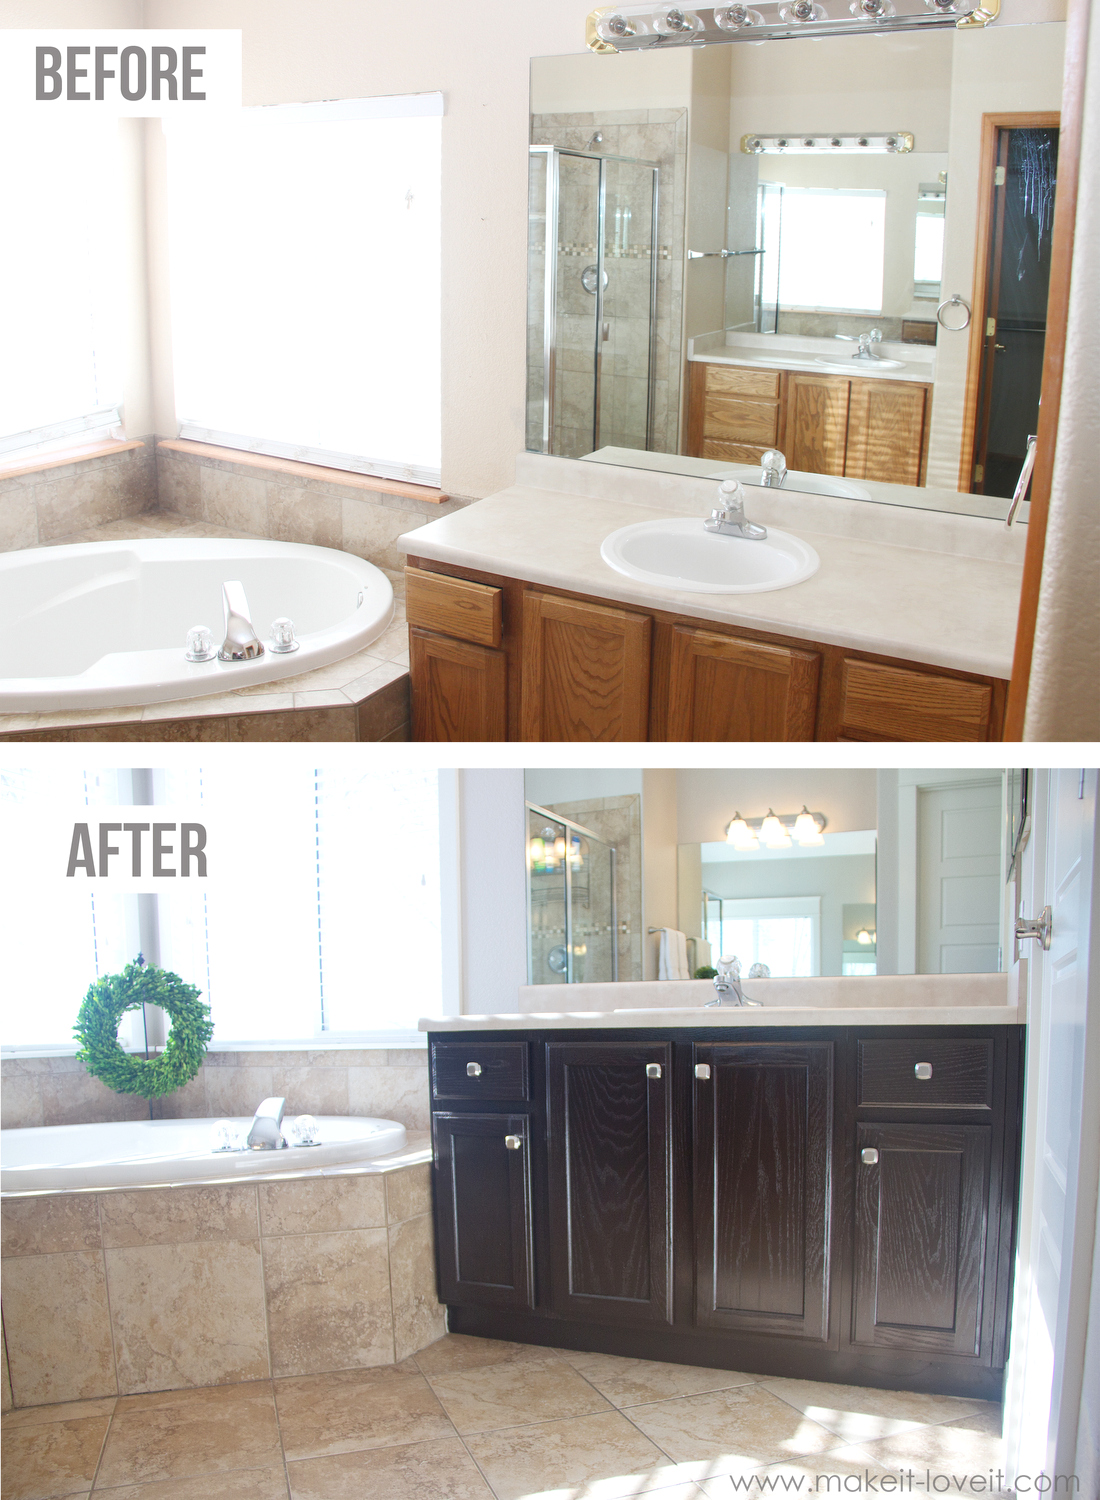 Java Stained Kitchen Cabinets How To Stain Oak Cabinets...the Simple Method (without